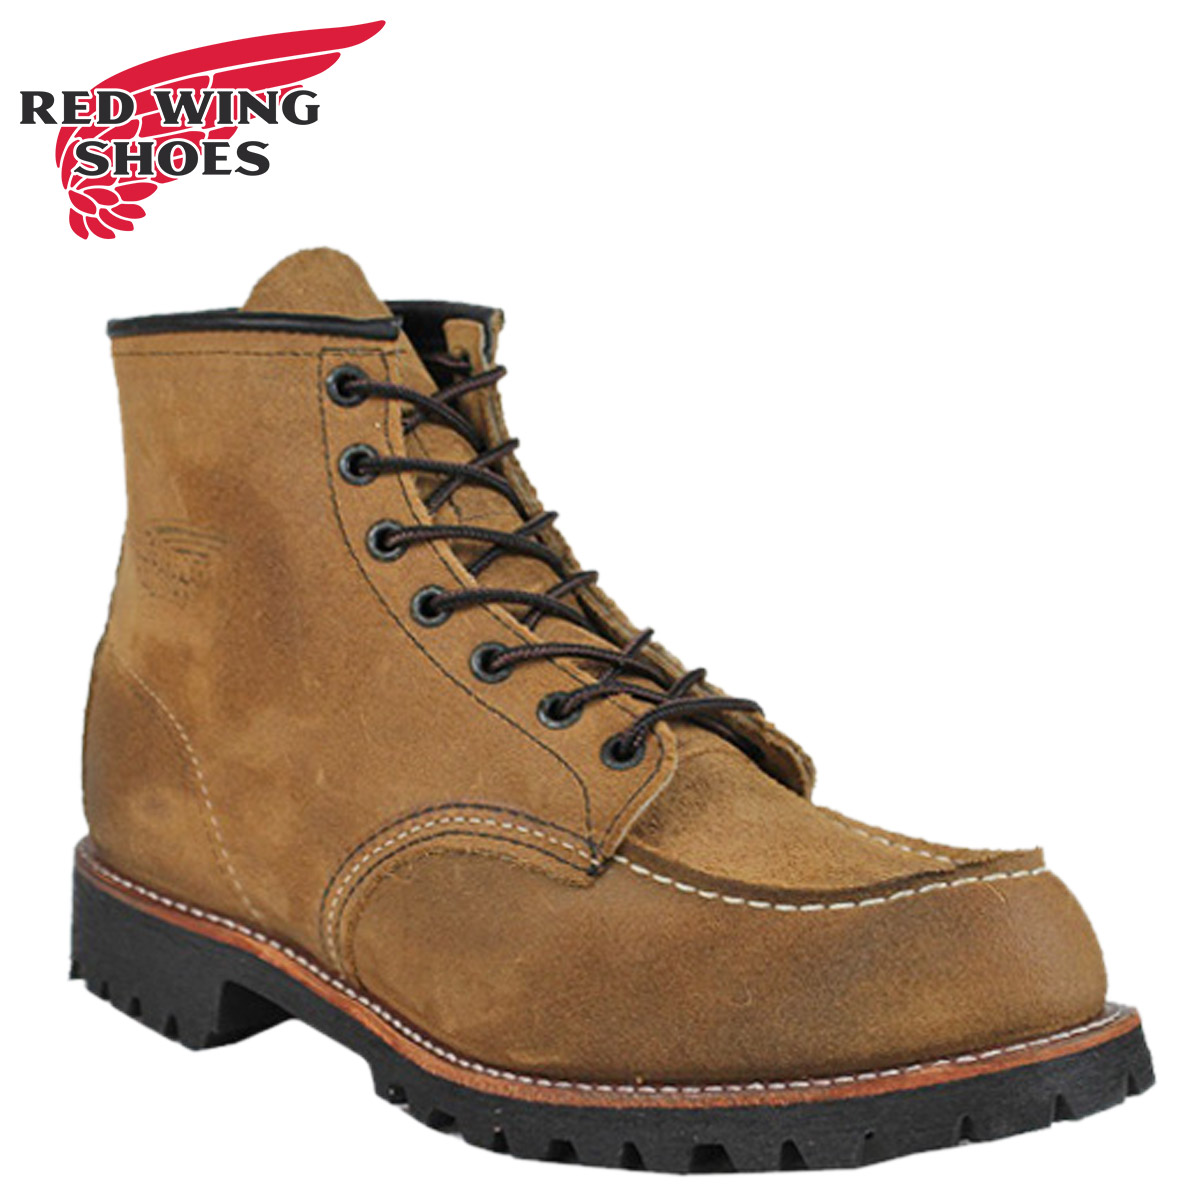 Sugar Online Shop | Rakuten Global Market: Redwing RED WING J CREW ...